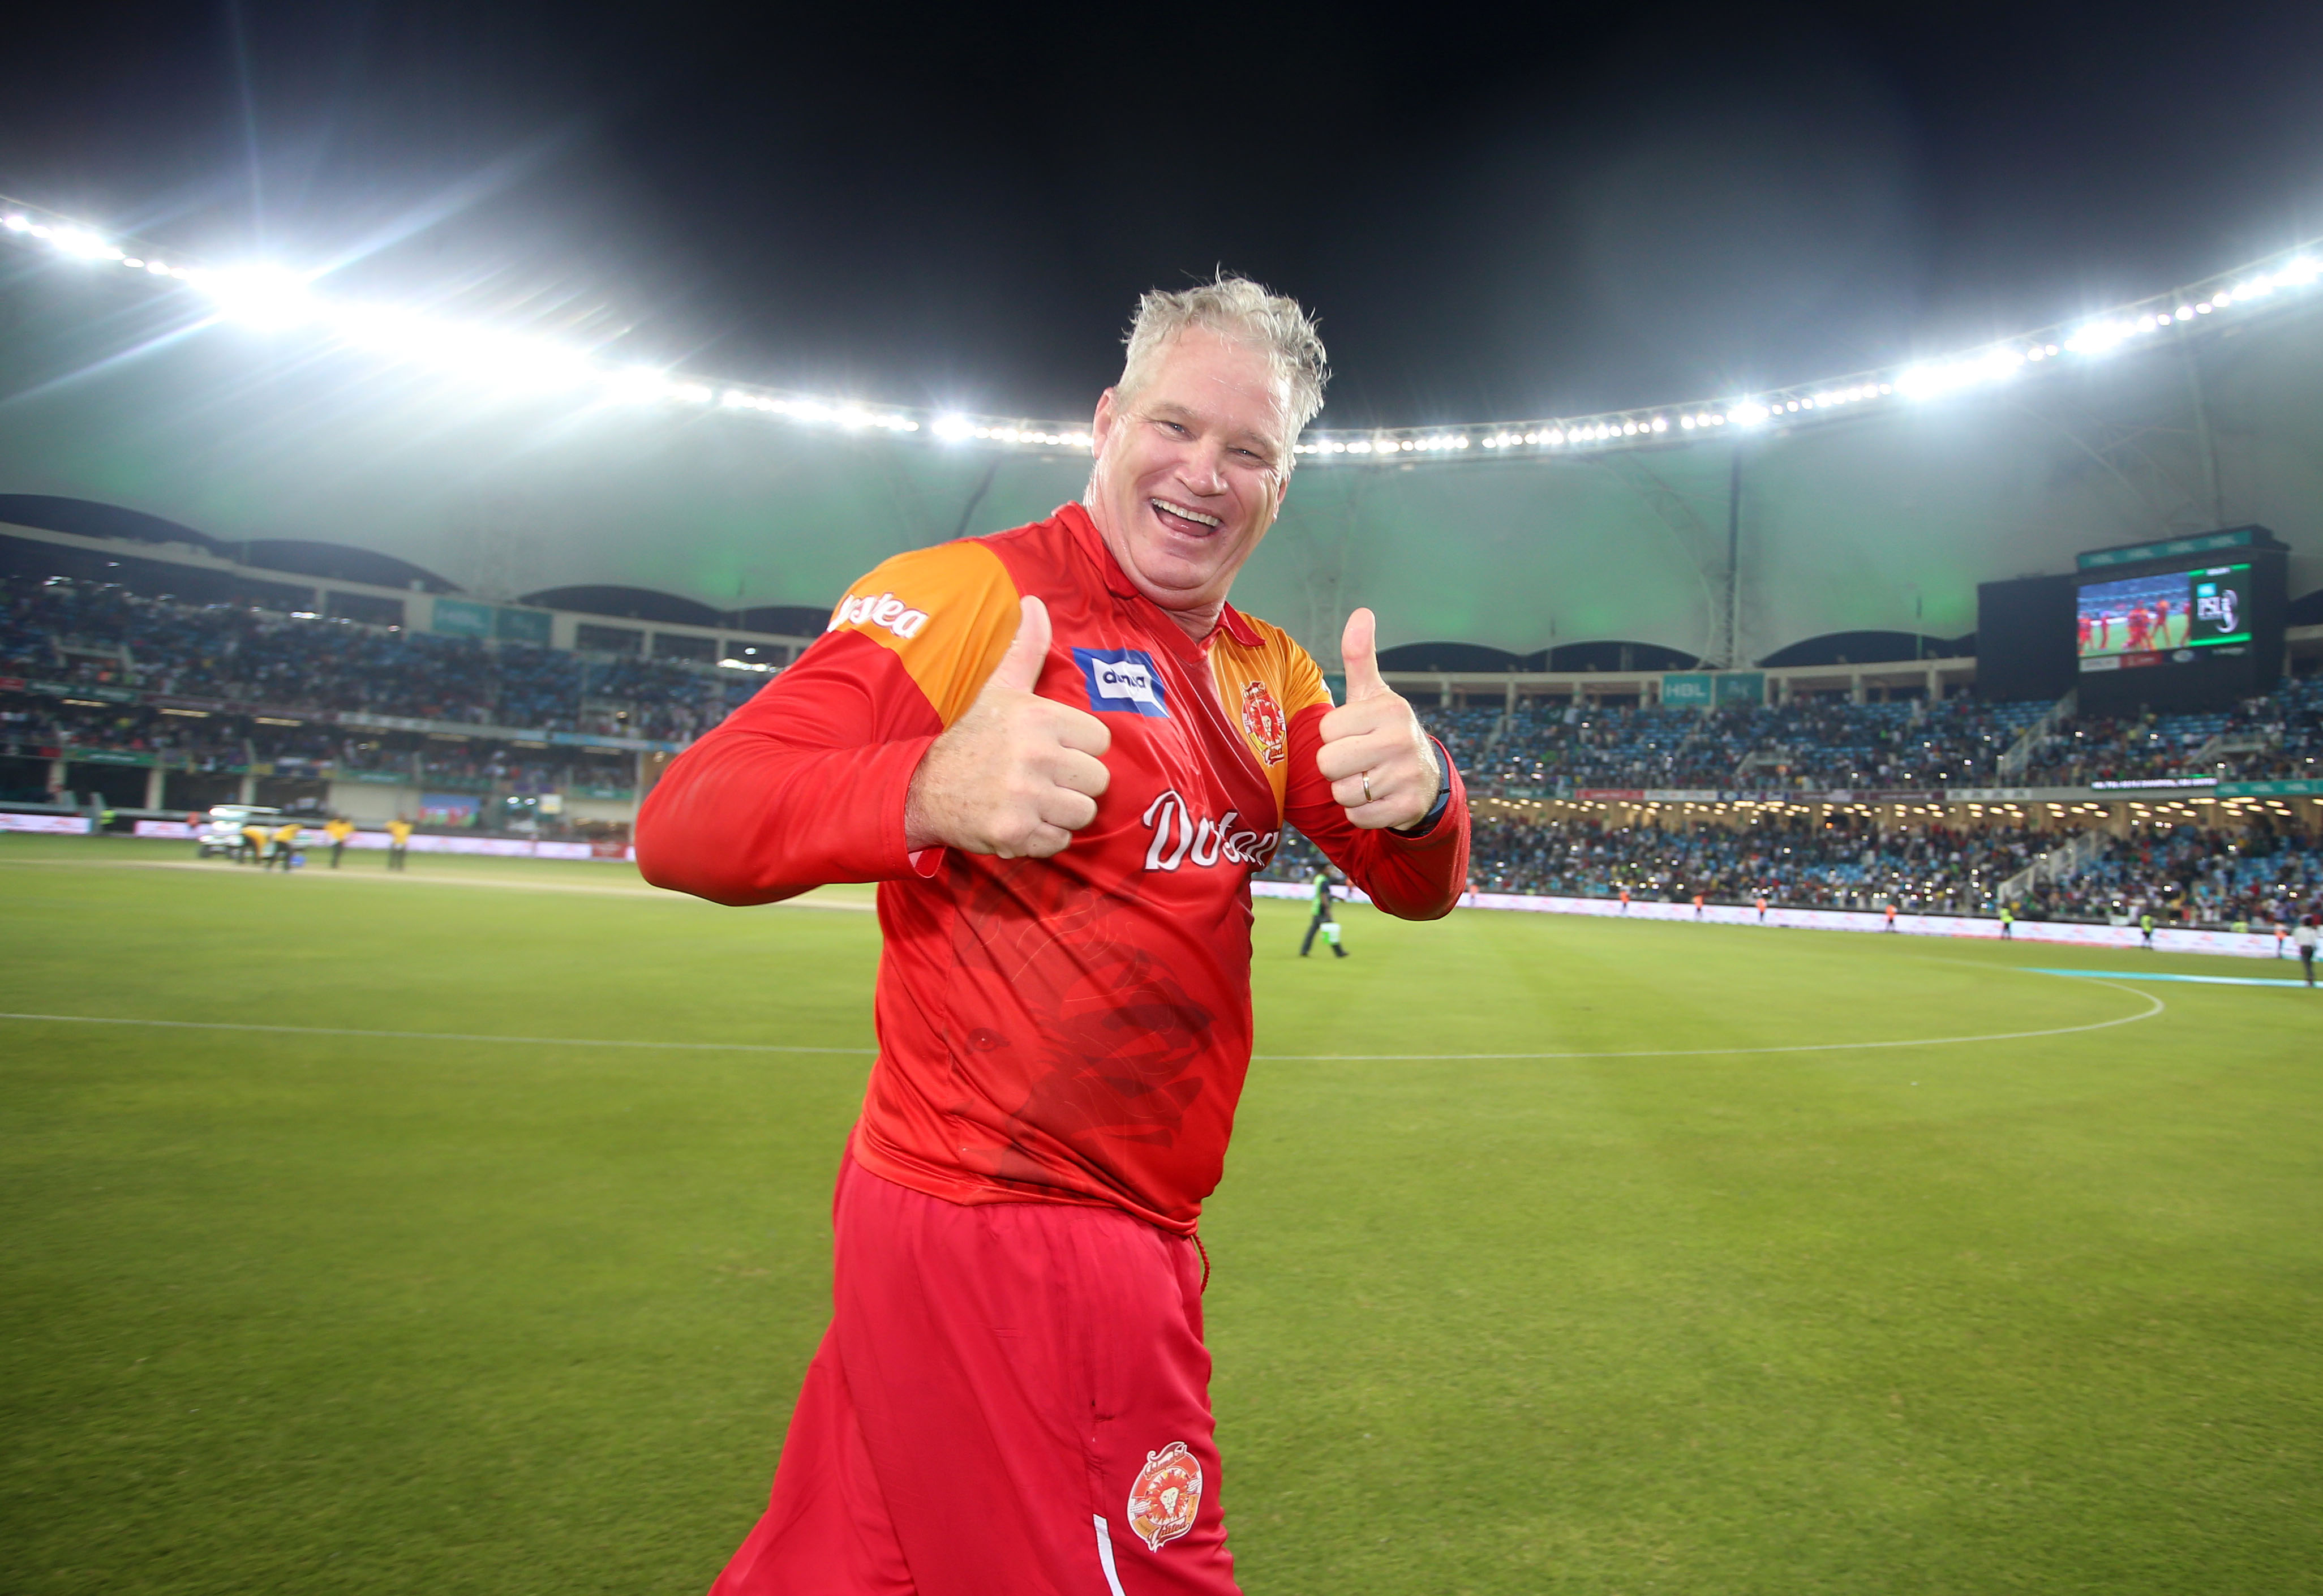 Pic by Chris Whiteoak/whiteoakpictures CRICKET: Pakistan Super League. Final: Islamabad United v Quetta Gladiators. International Cricket stadium, Dubai. United celebrate the win. Dean Jones